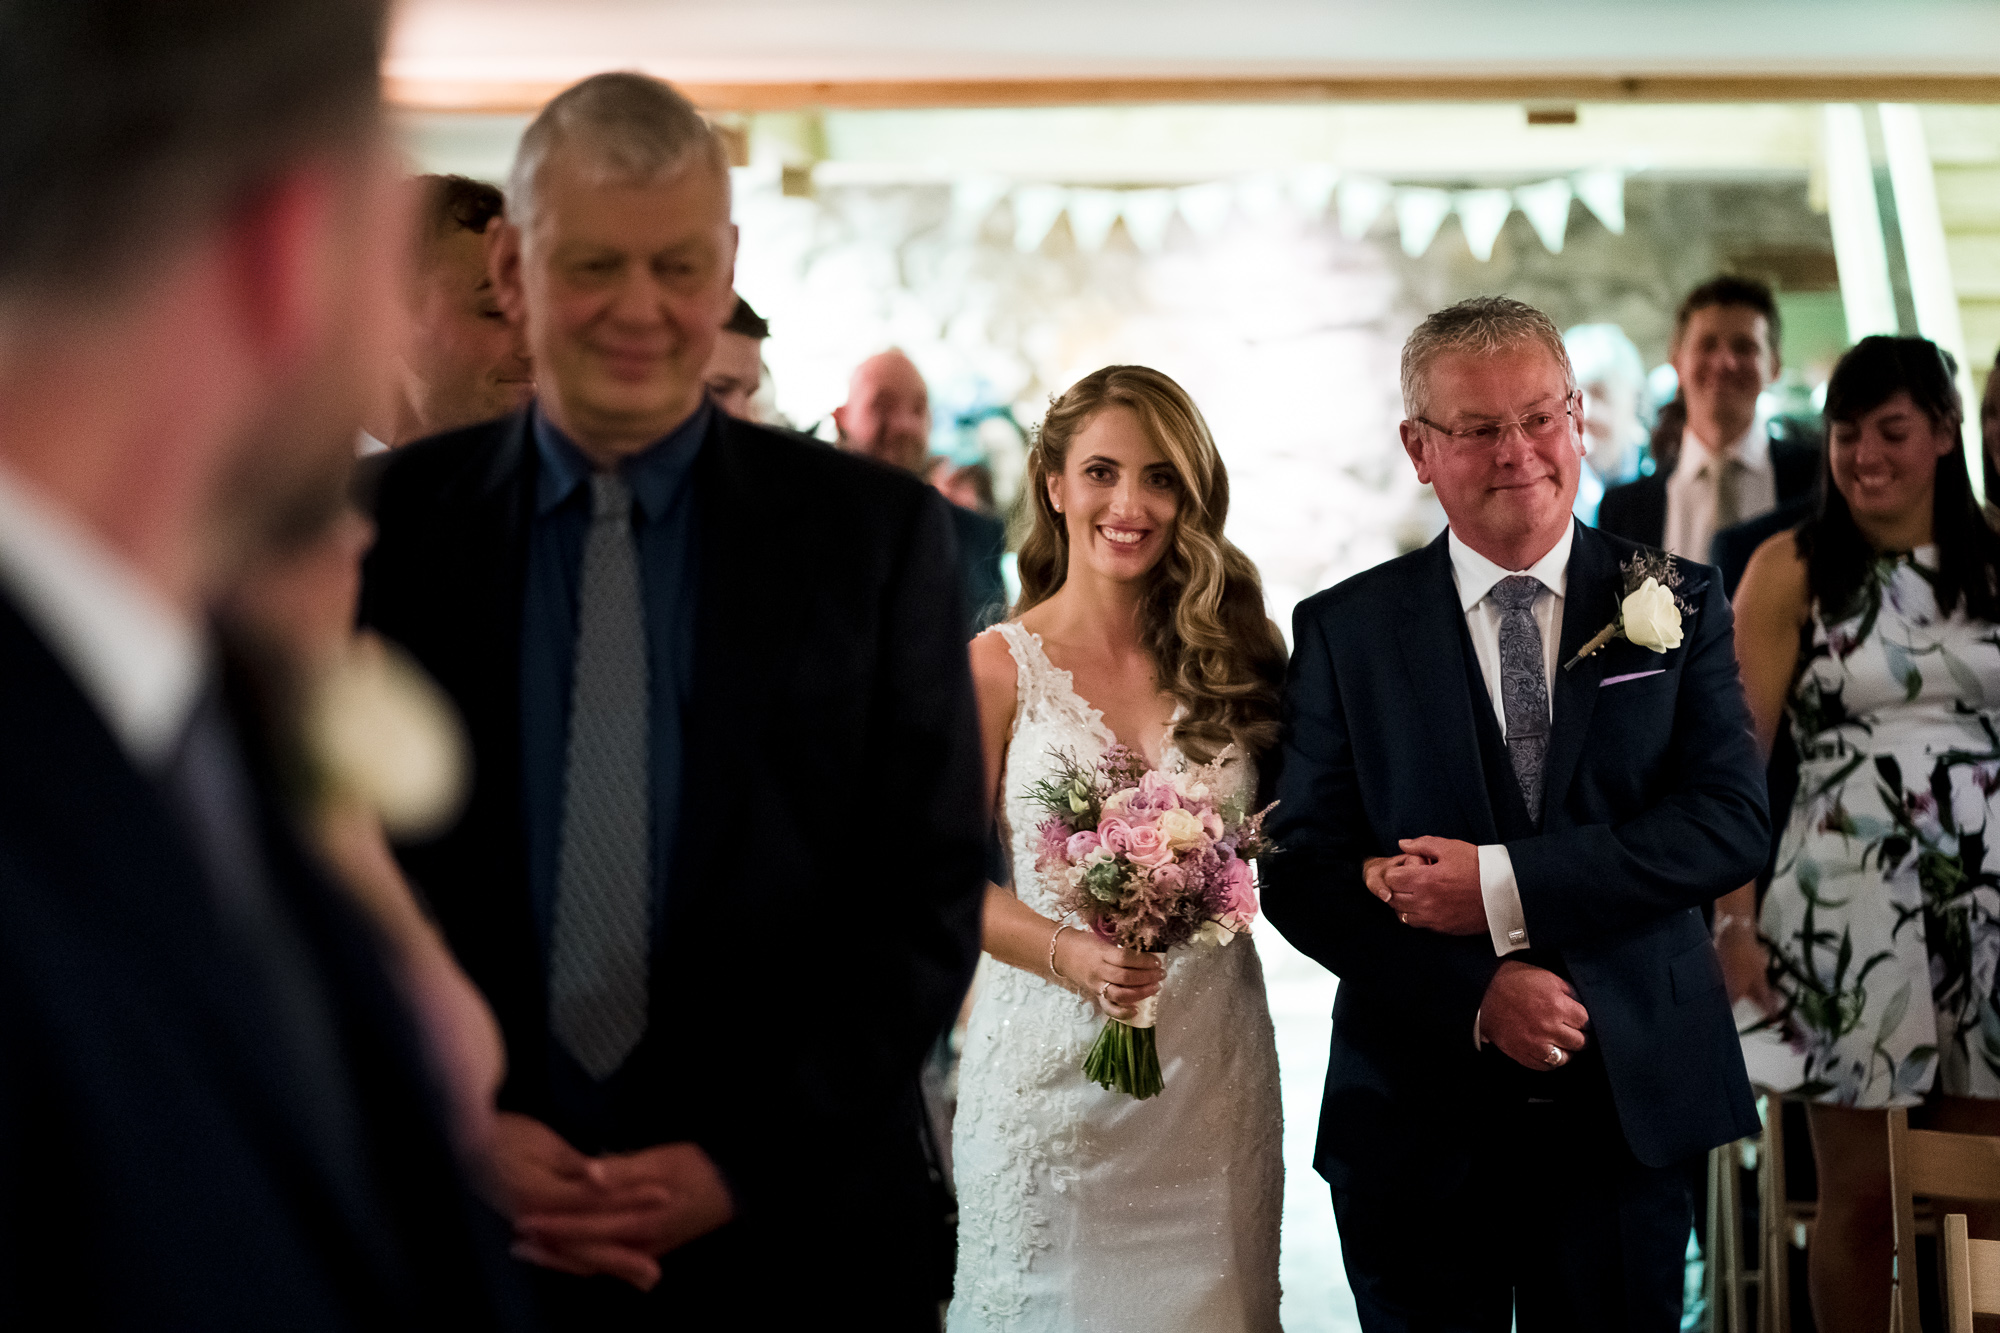 Tower Hill BArn Wedding Photographer based in north west england (19 of 35).jpg